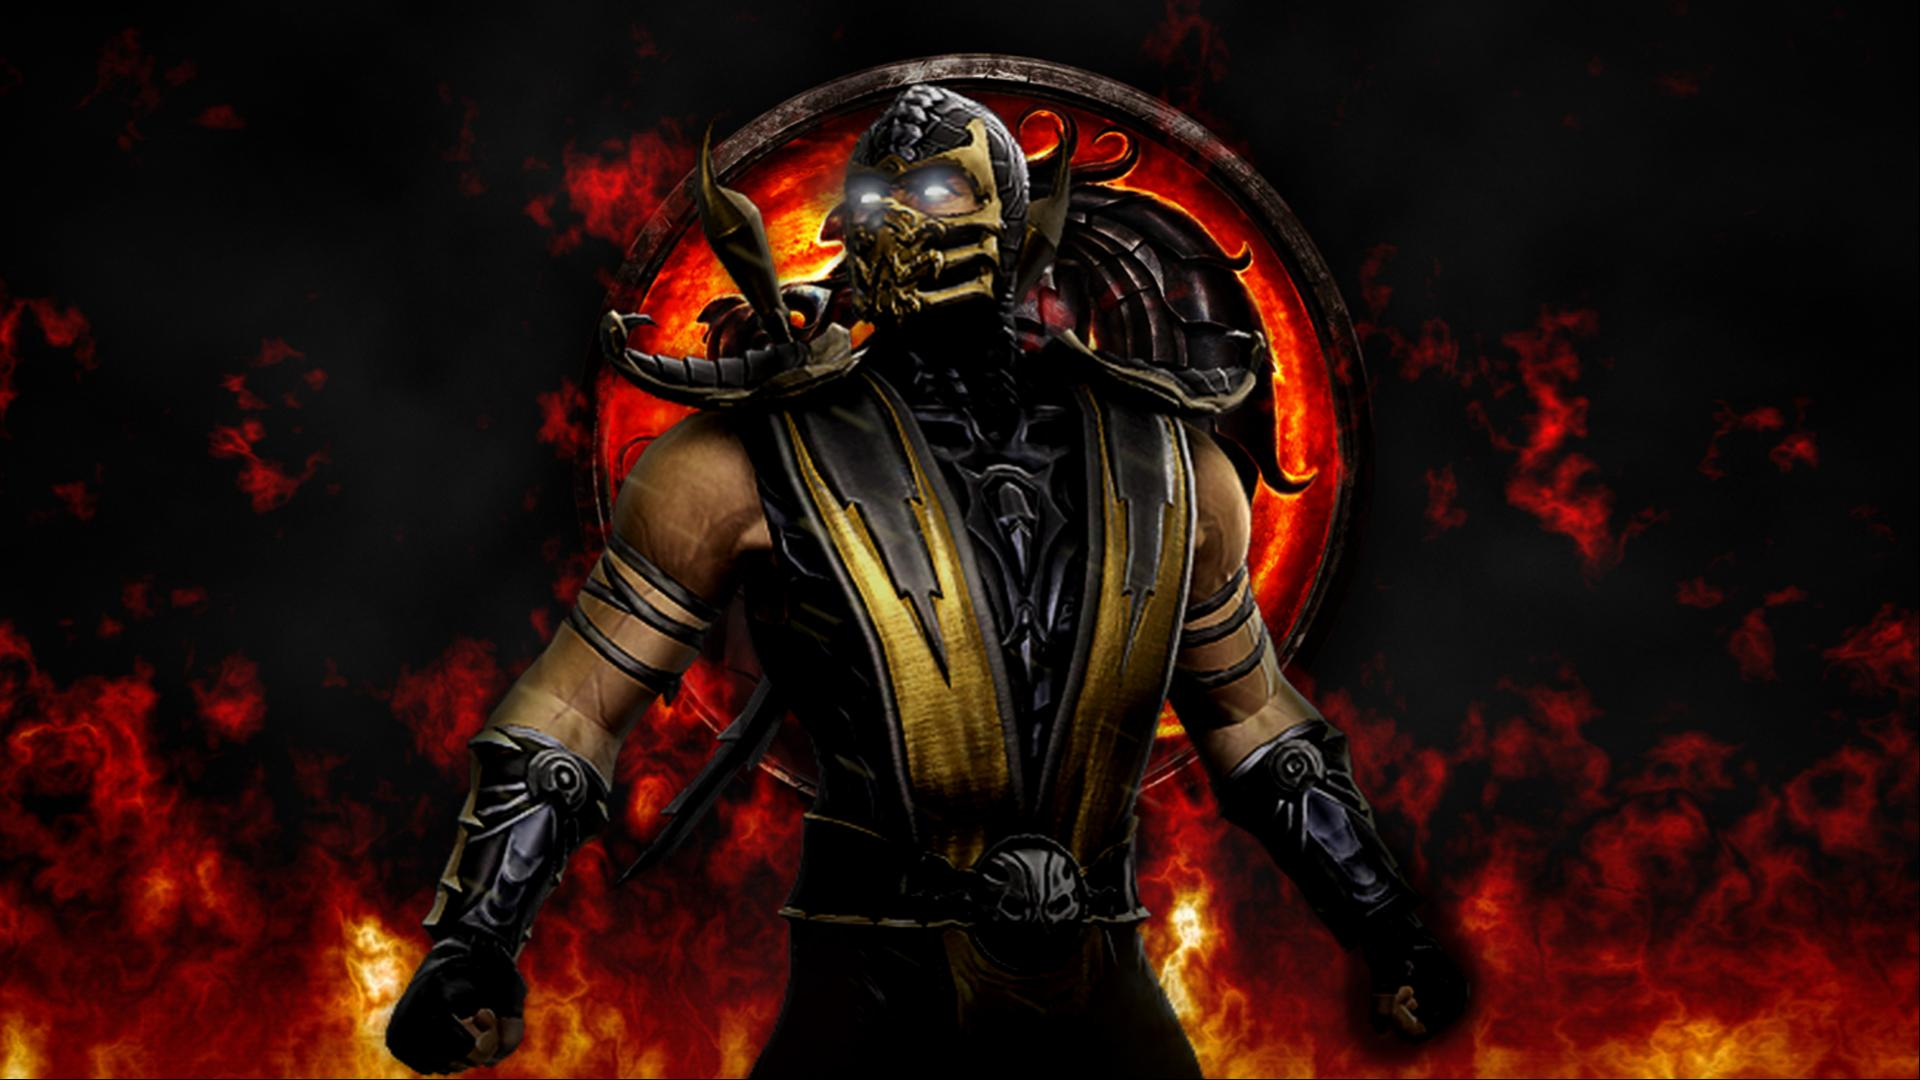 Images Of Scorpion From Mortal Kombat For Wallpaper: Images Of Scorpion From Mortal Kombat For Wallpaper